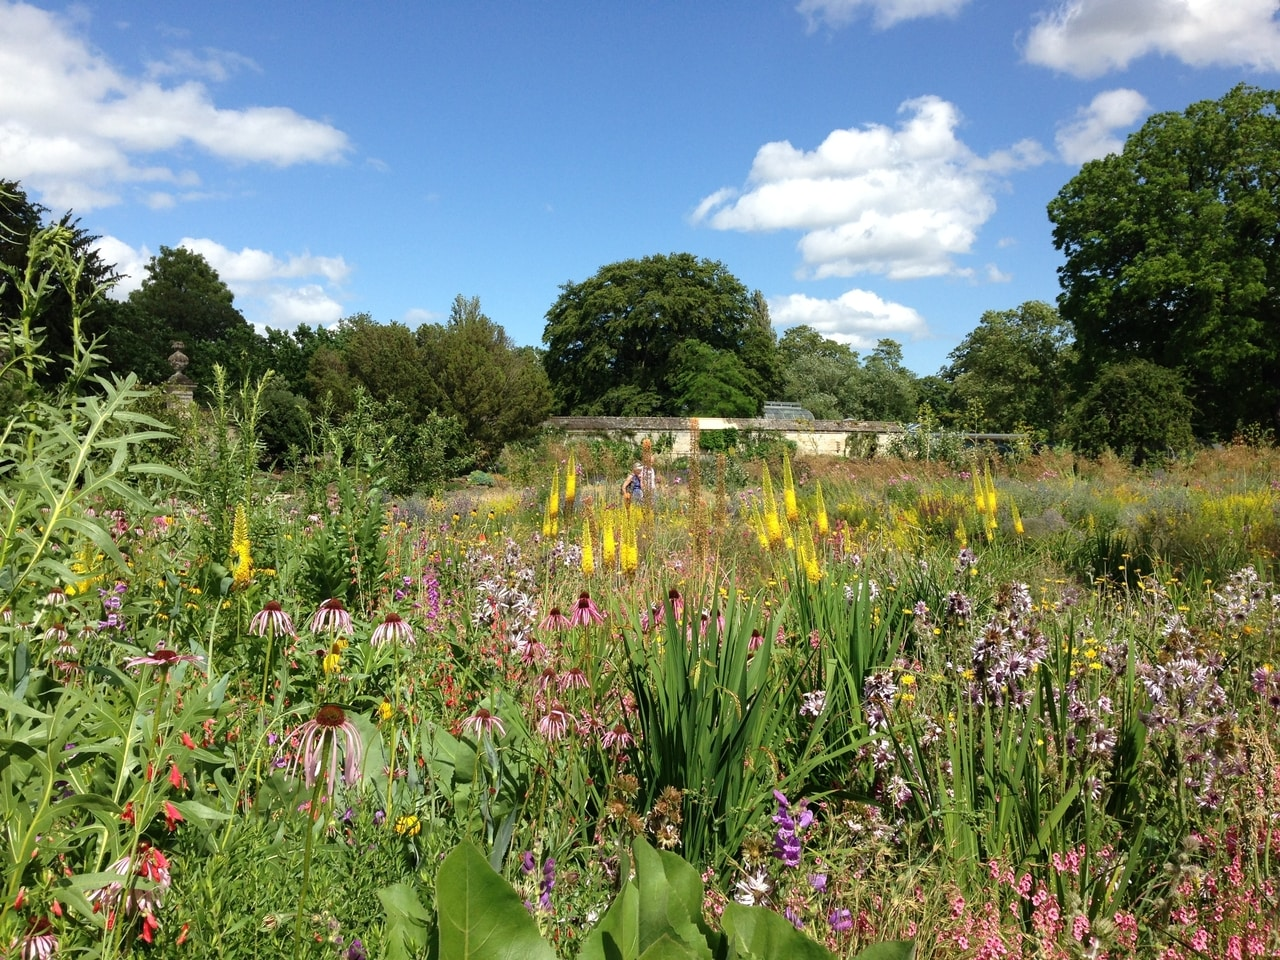 James Hitchmough's meadow at the University of Oxford Botanic garden in full bloom in July 2015